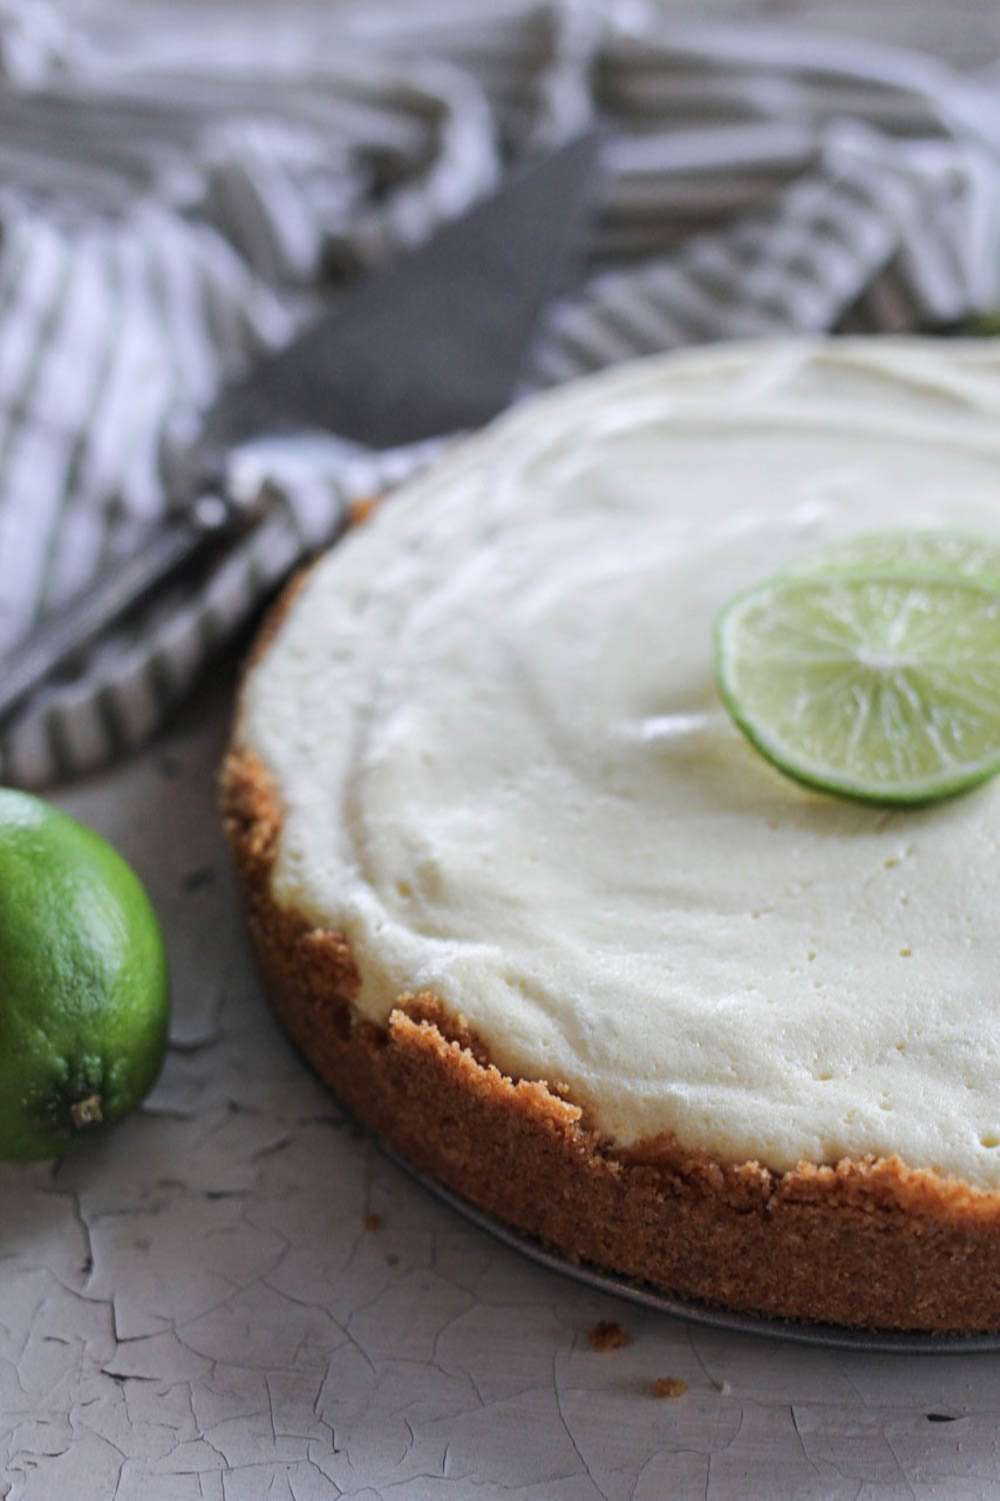 Key Lime pie with towel and fresh limes